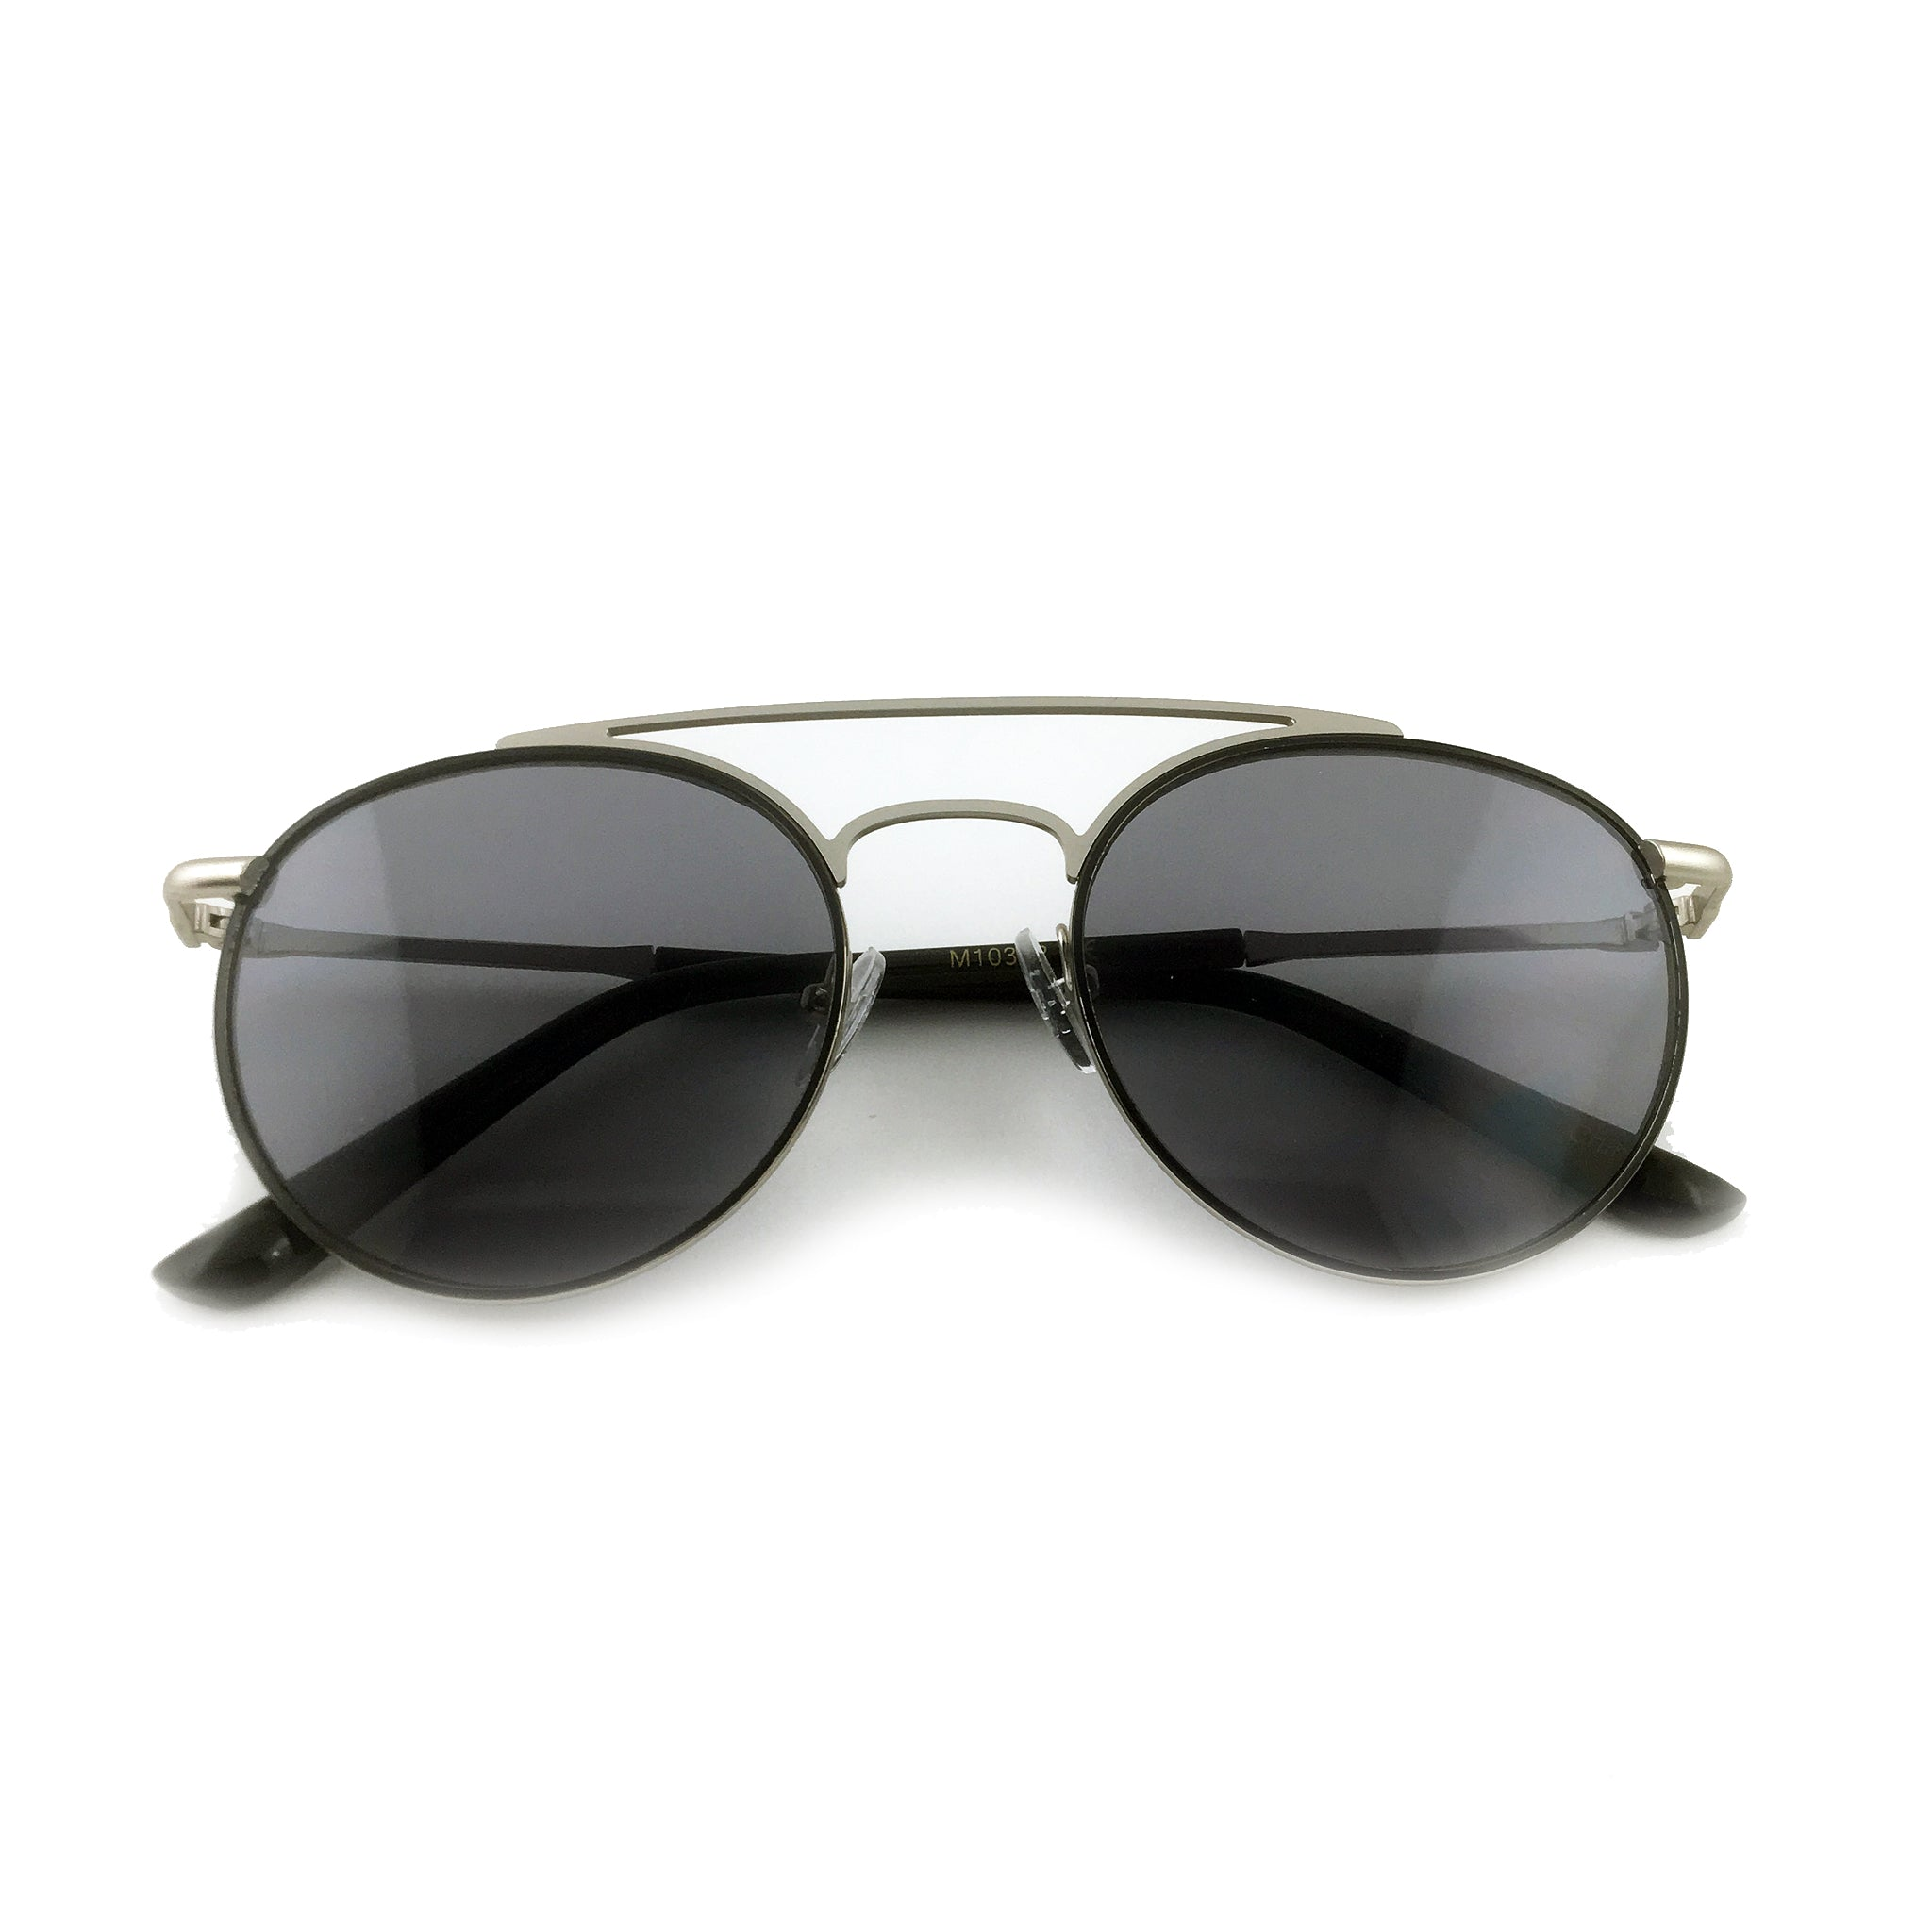 Round aviator sunglasses with black tinted lens and silver metal frame | The Perfect Gentleman